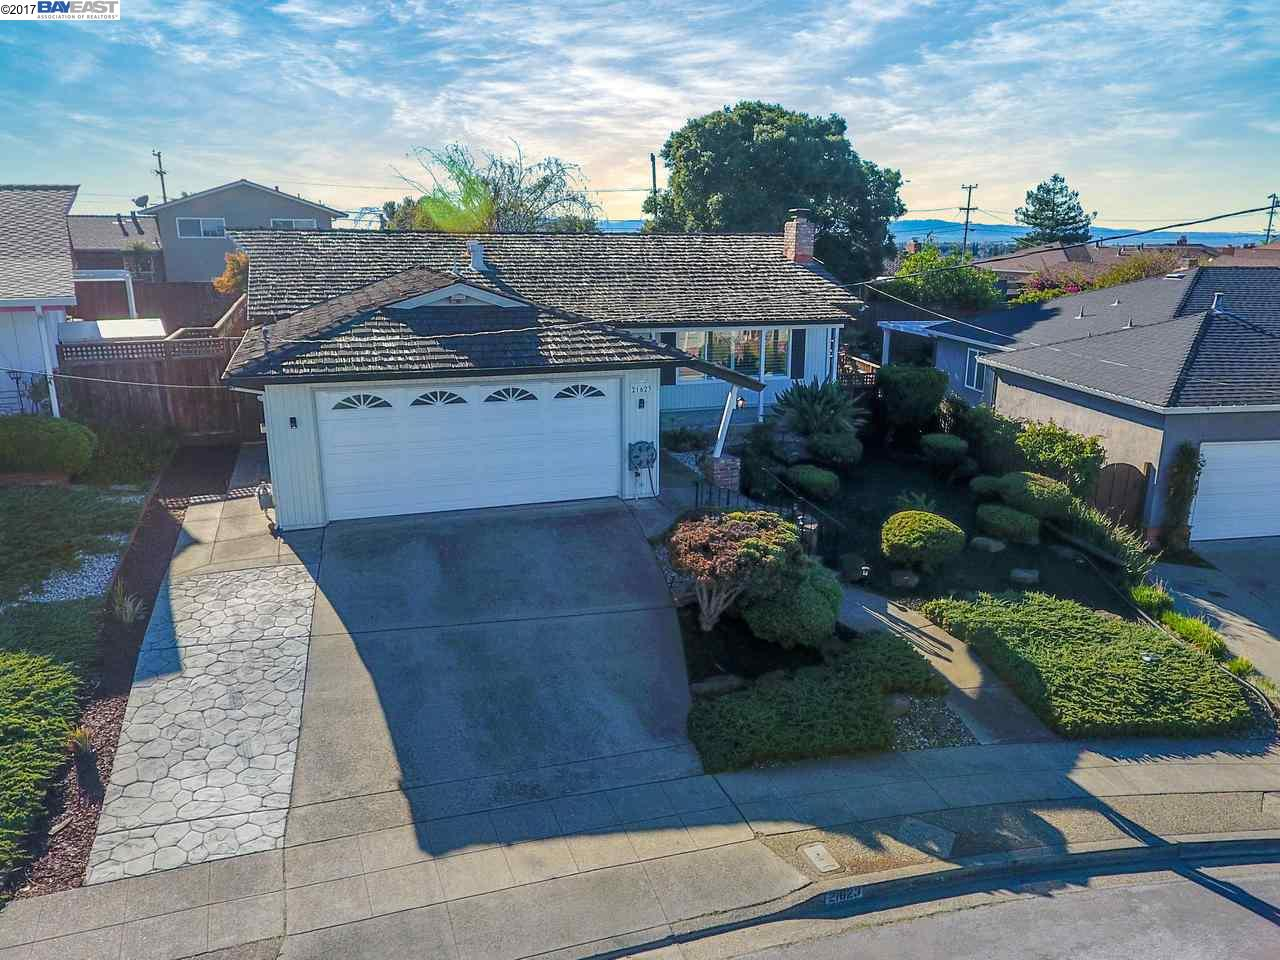 21623 Gail Dr, Castro Valley, CA, 94546 - SOLD LISTING, MLS ...